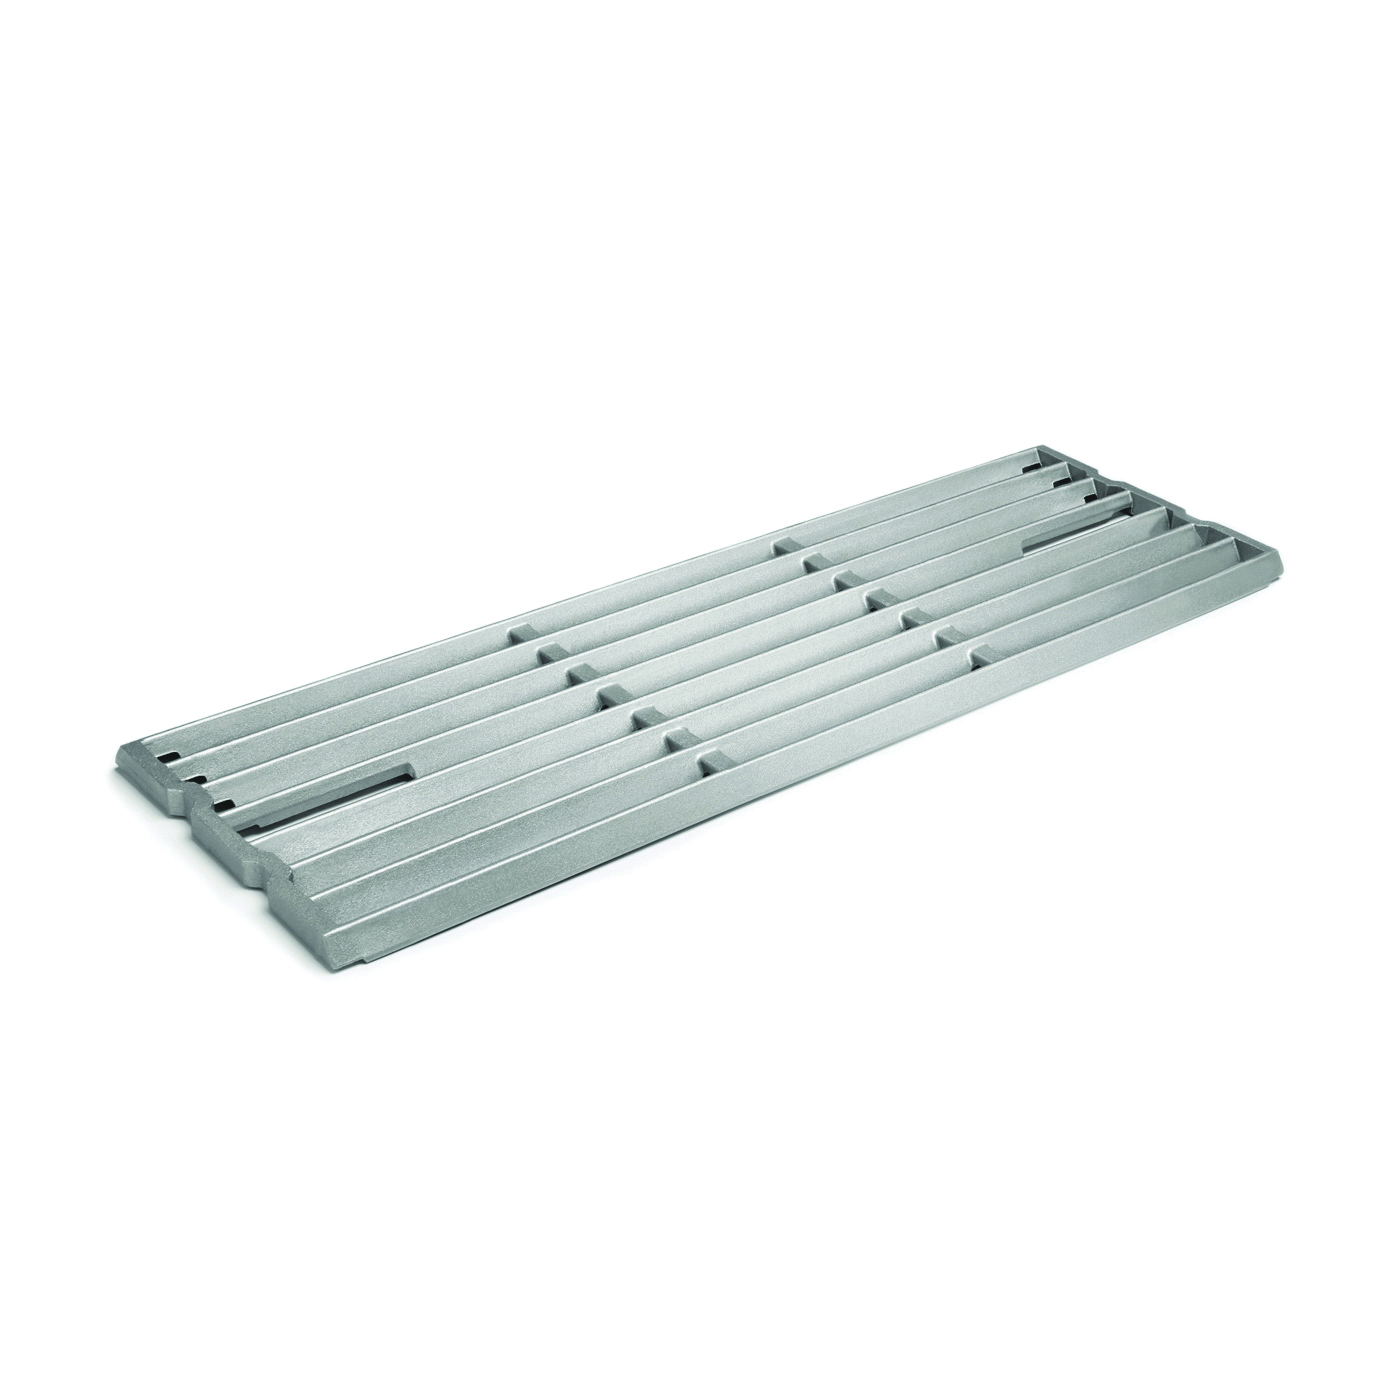 Picture of Broil King 11249 Grid Grill, 19-1/4 in L, 6 in W, Stainless Steel